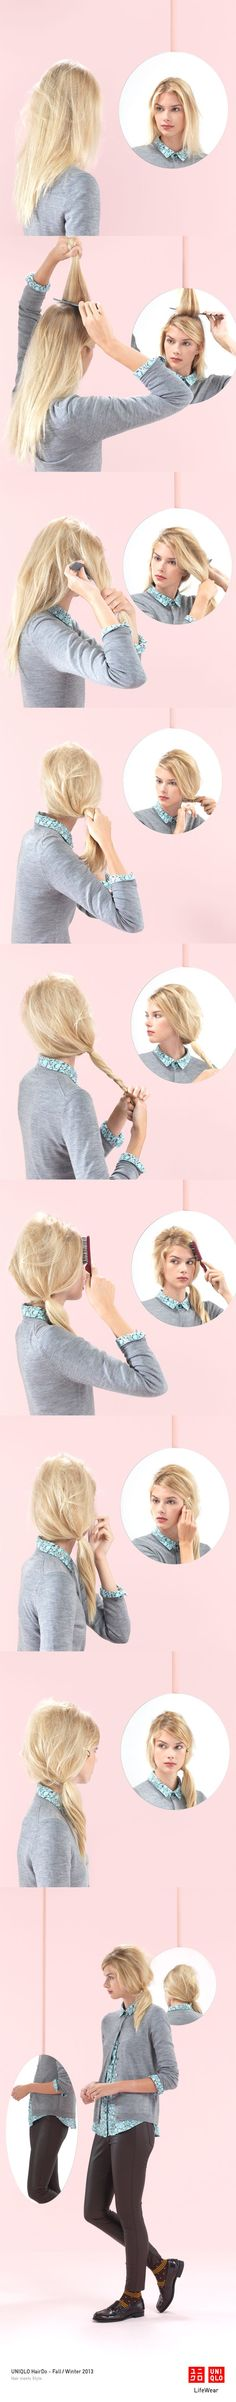 The Bee Hive with Twist - A cardigan, patterned blouse, and loose ponytail make this a great look for a day at the office. #Ponytail #Hair #Hairstyle #DIY #Uniqlo